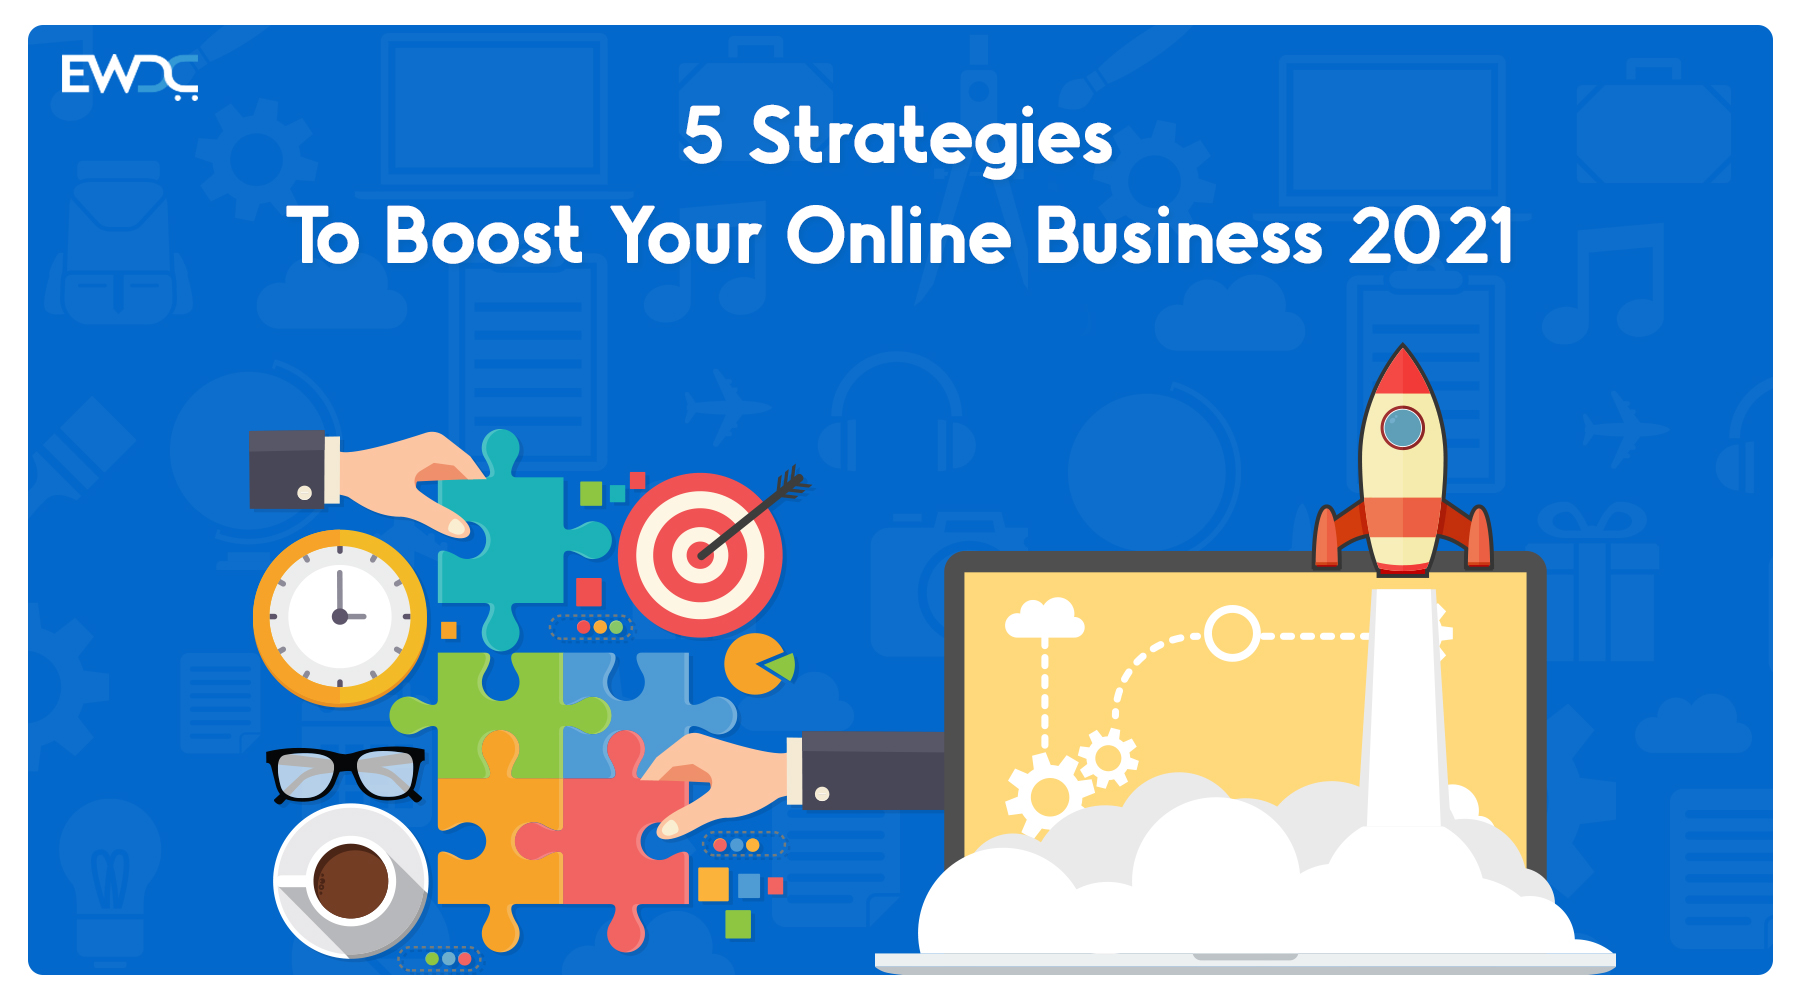 5 Stategies to Boost Your Online Business